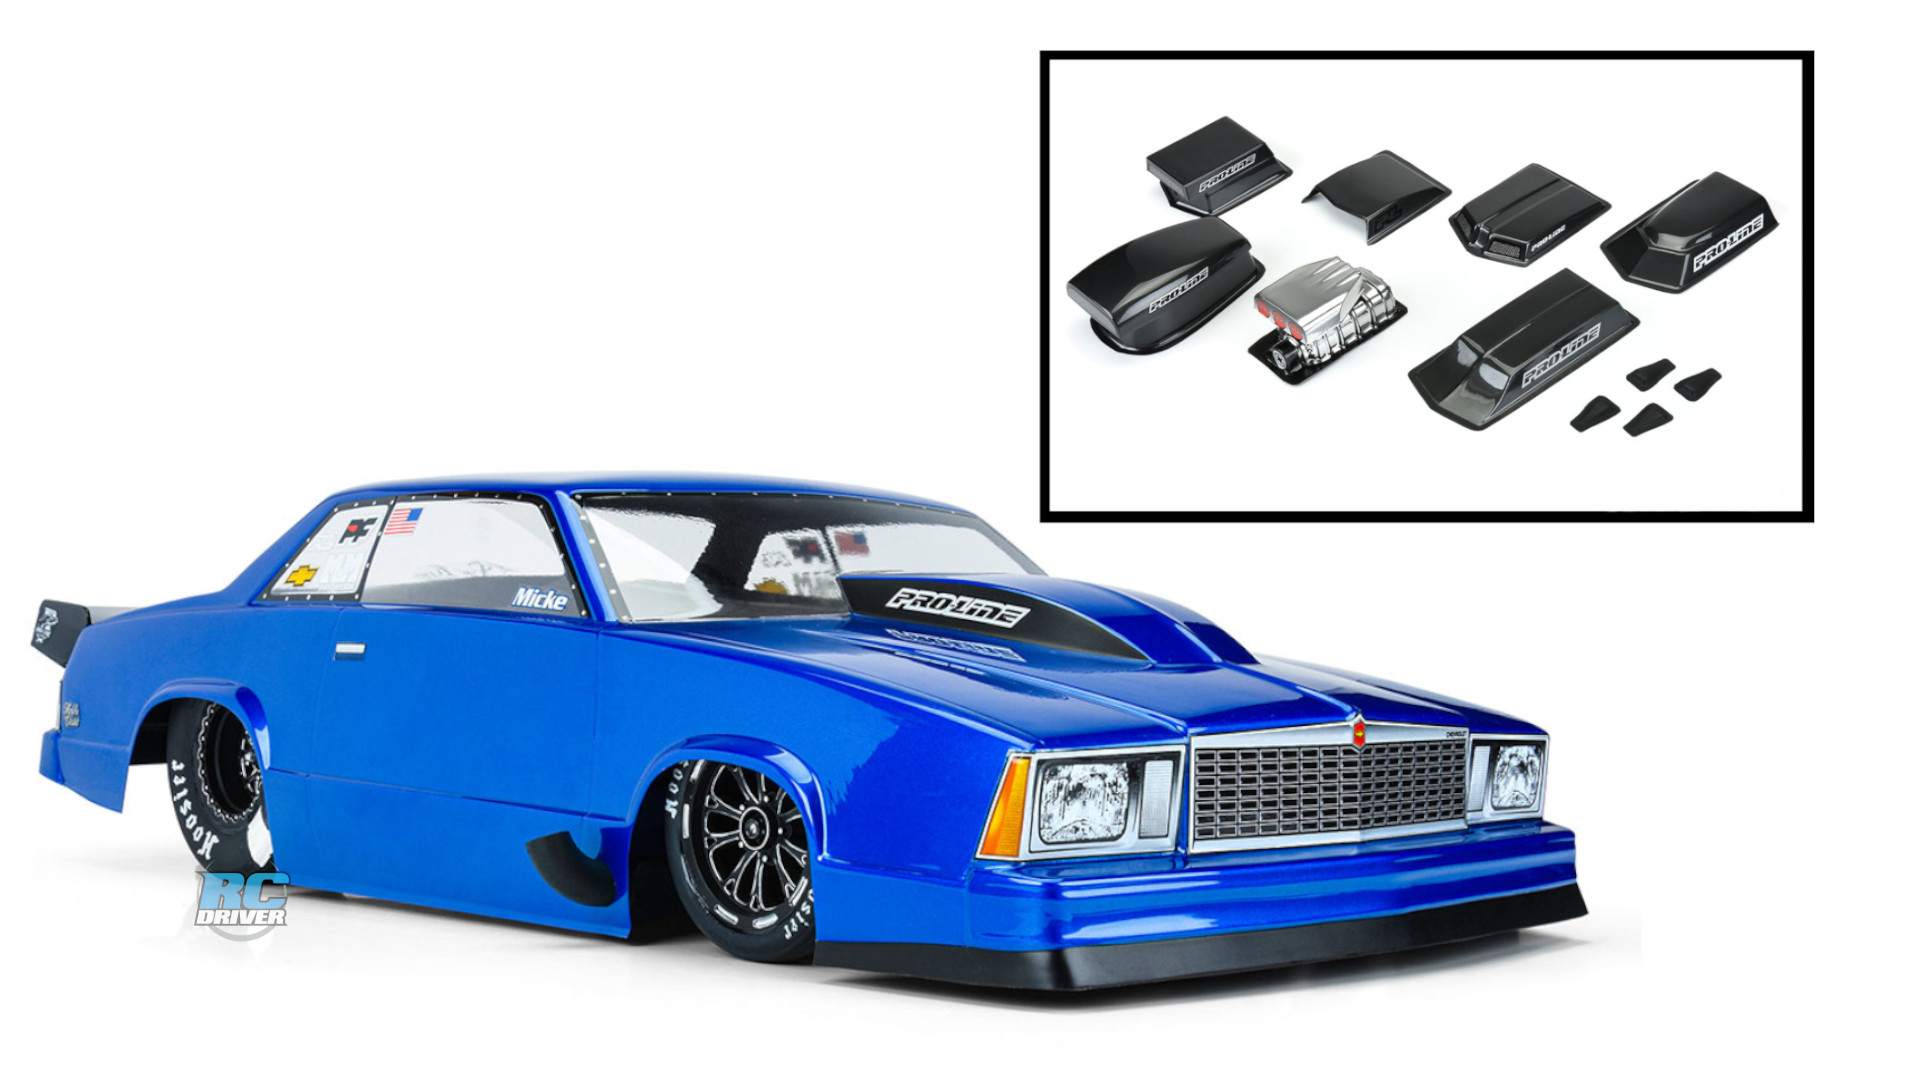 Pro-Line 1978 Chevy Malibu drag body & optional hood scoops/blowers